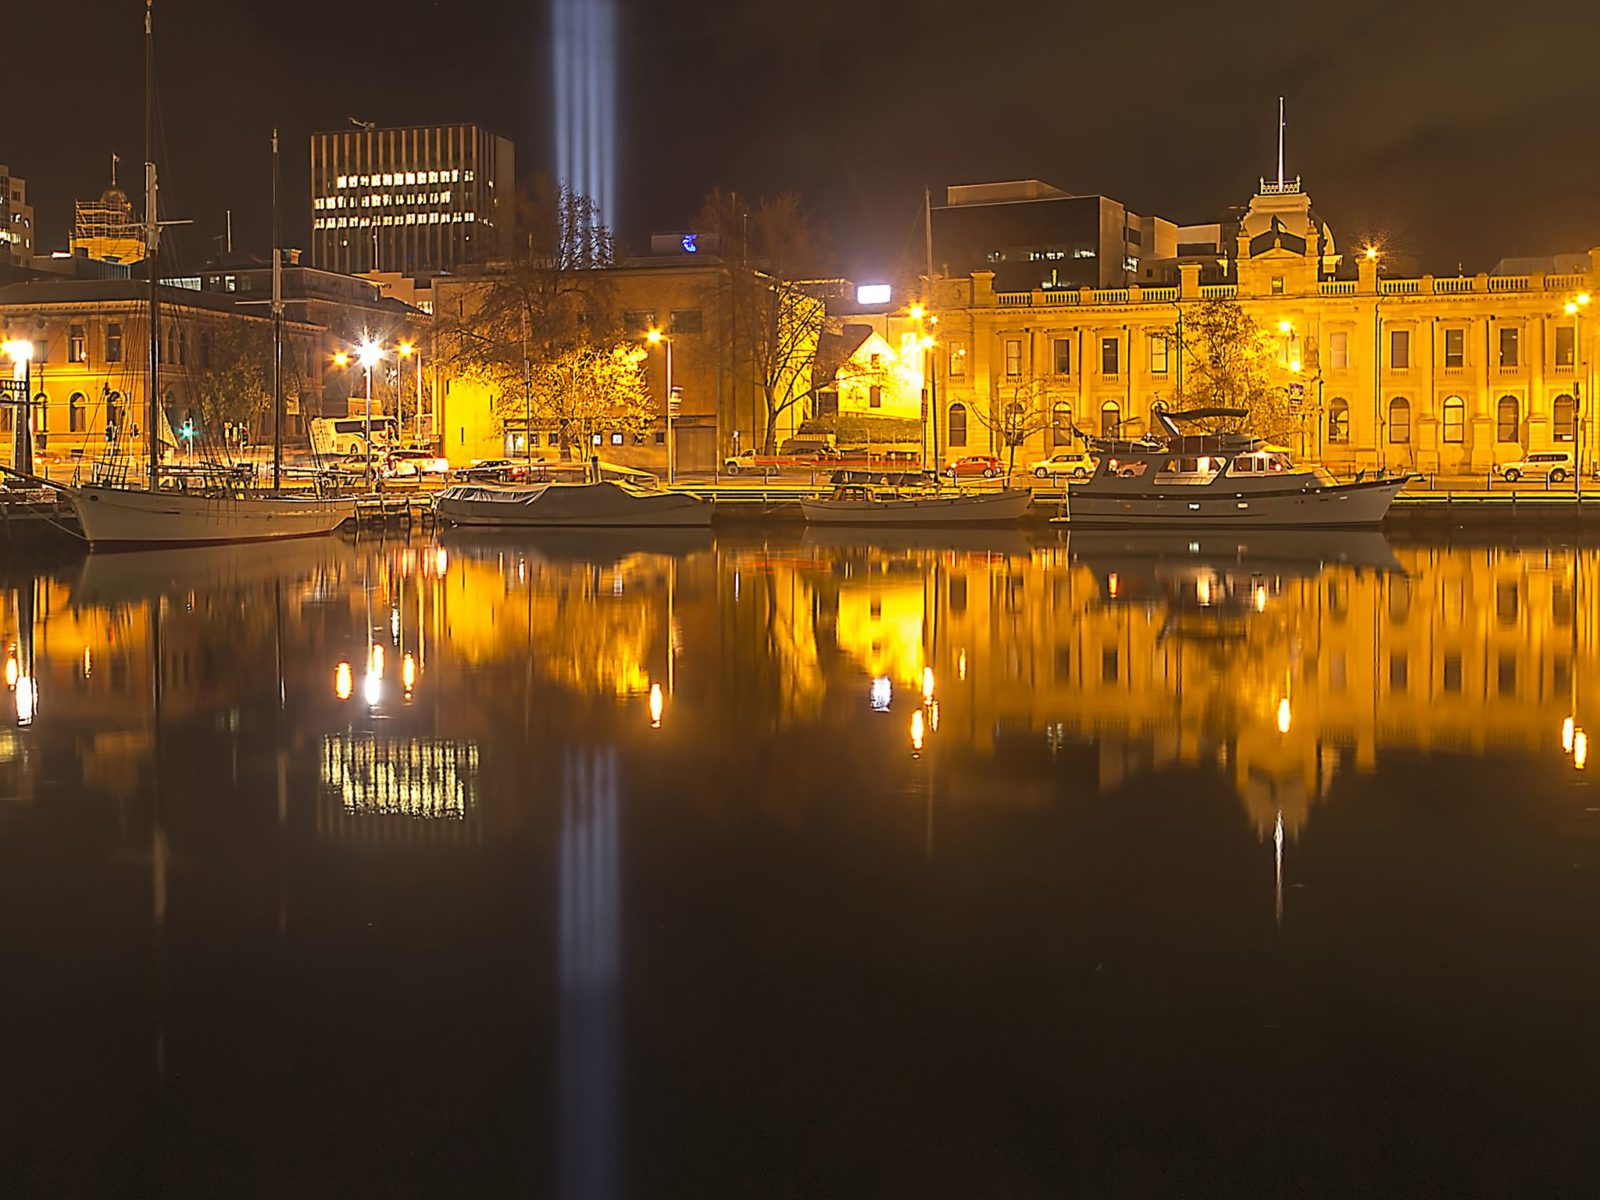 May Queen, Constitution Dock and the Customs House at night